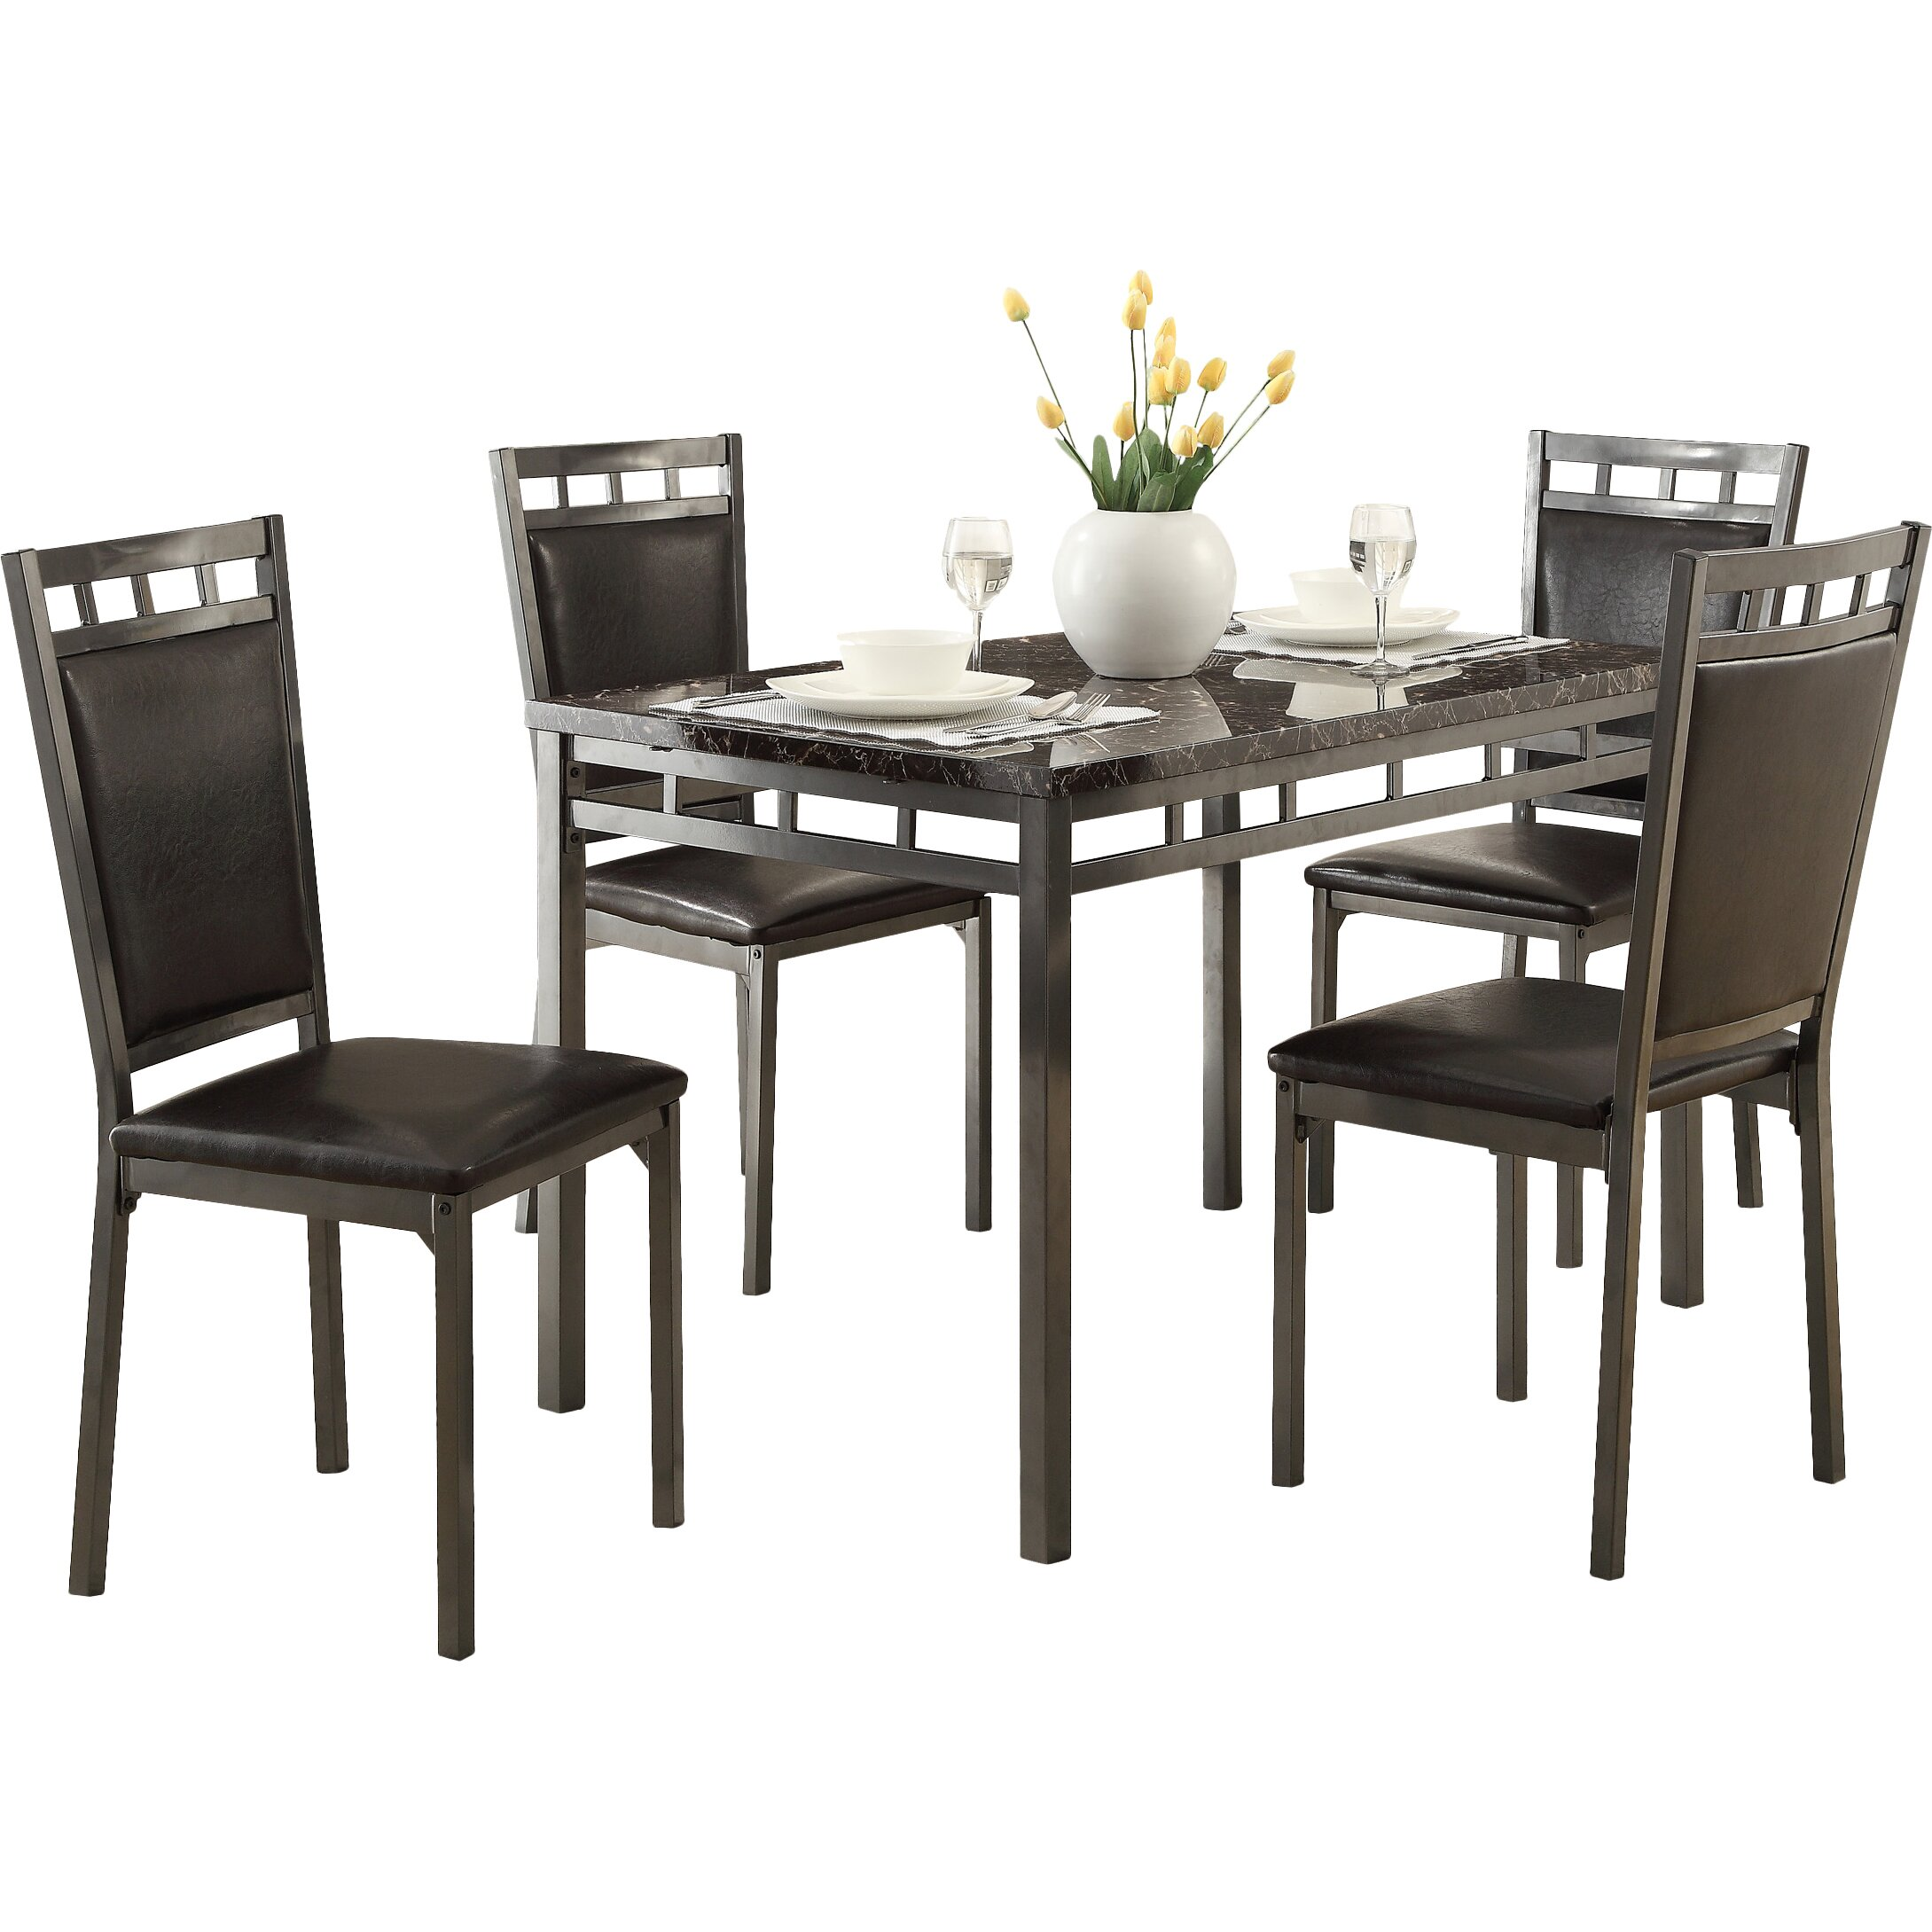 Andover mills abbey 5 piece dining set reviews wayfair for 5 piece dining room set under 200